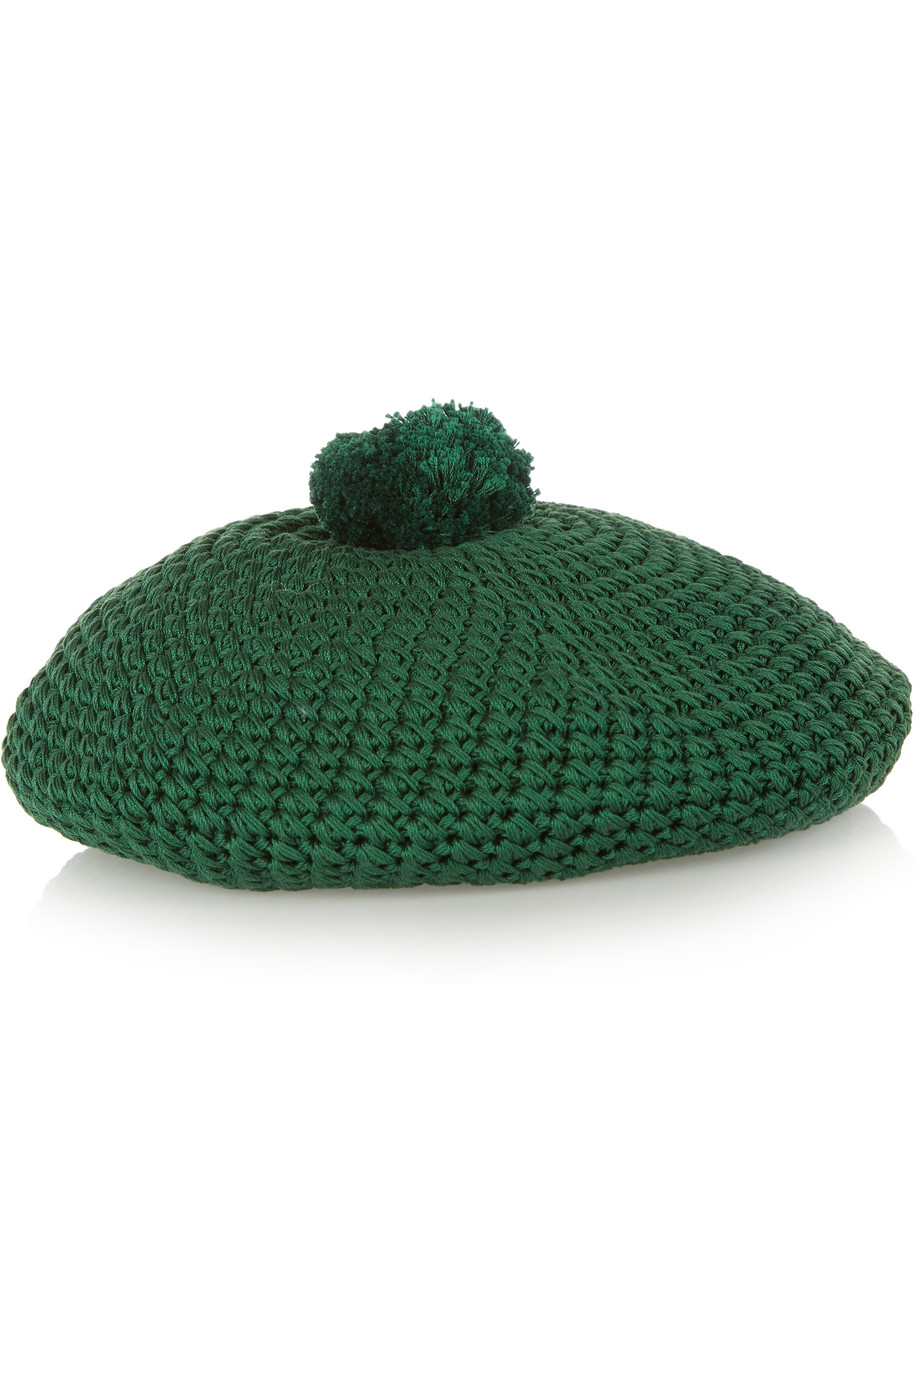 Gucci Crocheted Cotton Beret, Forest Green, Women's